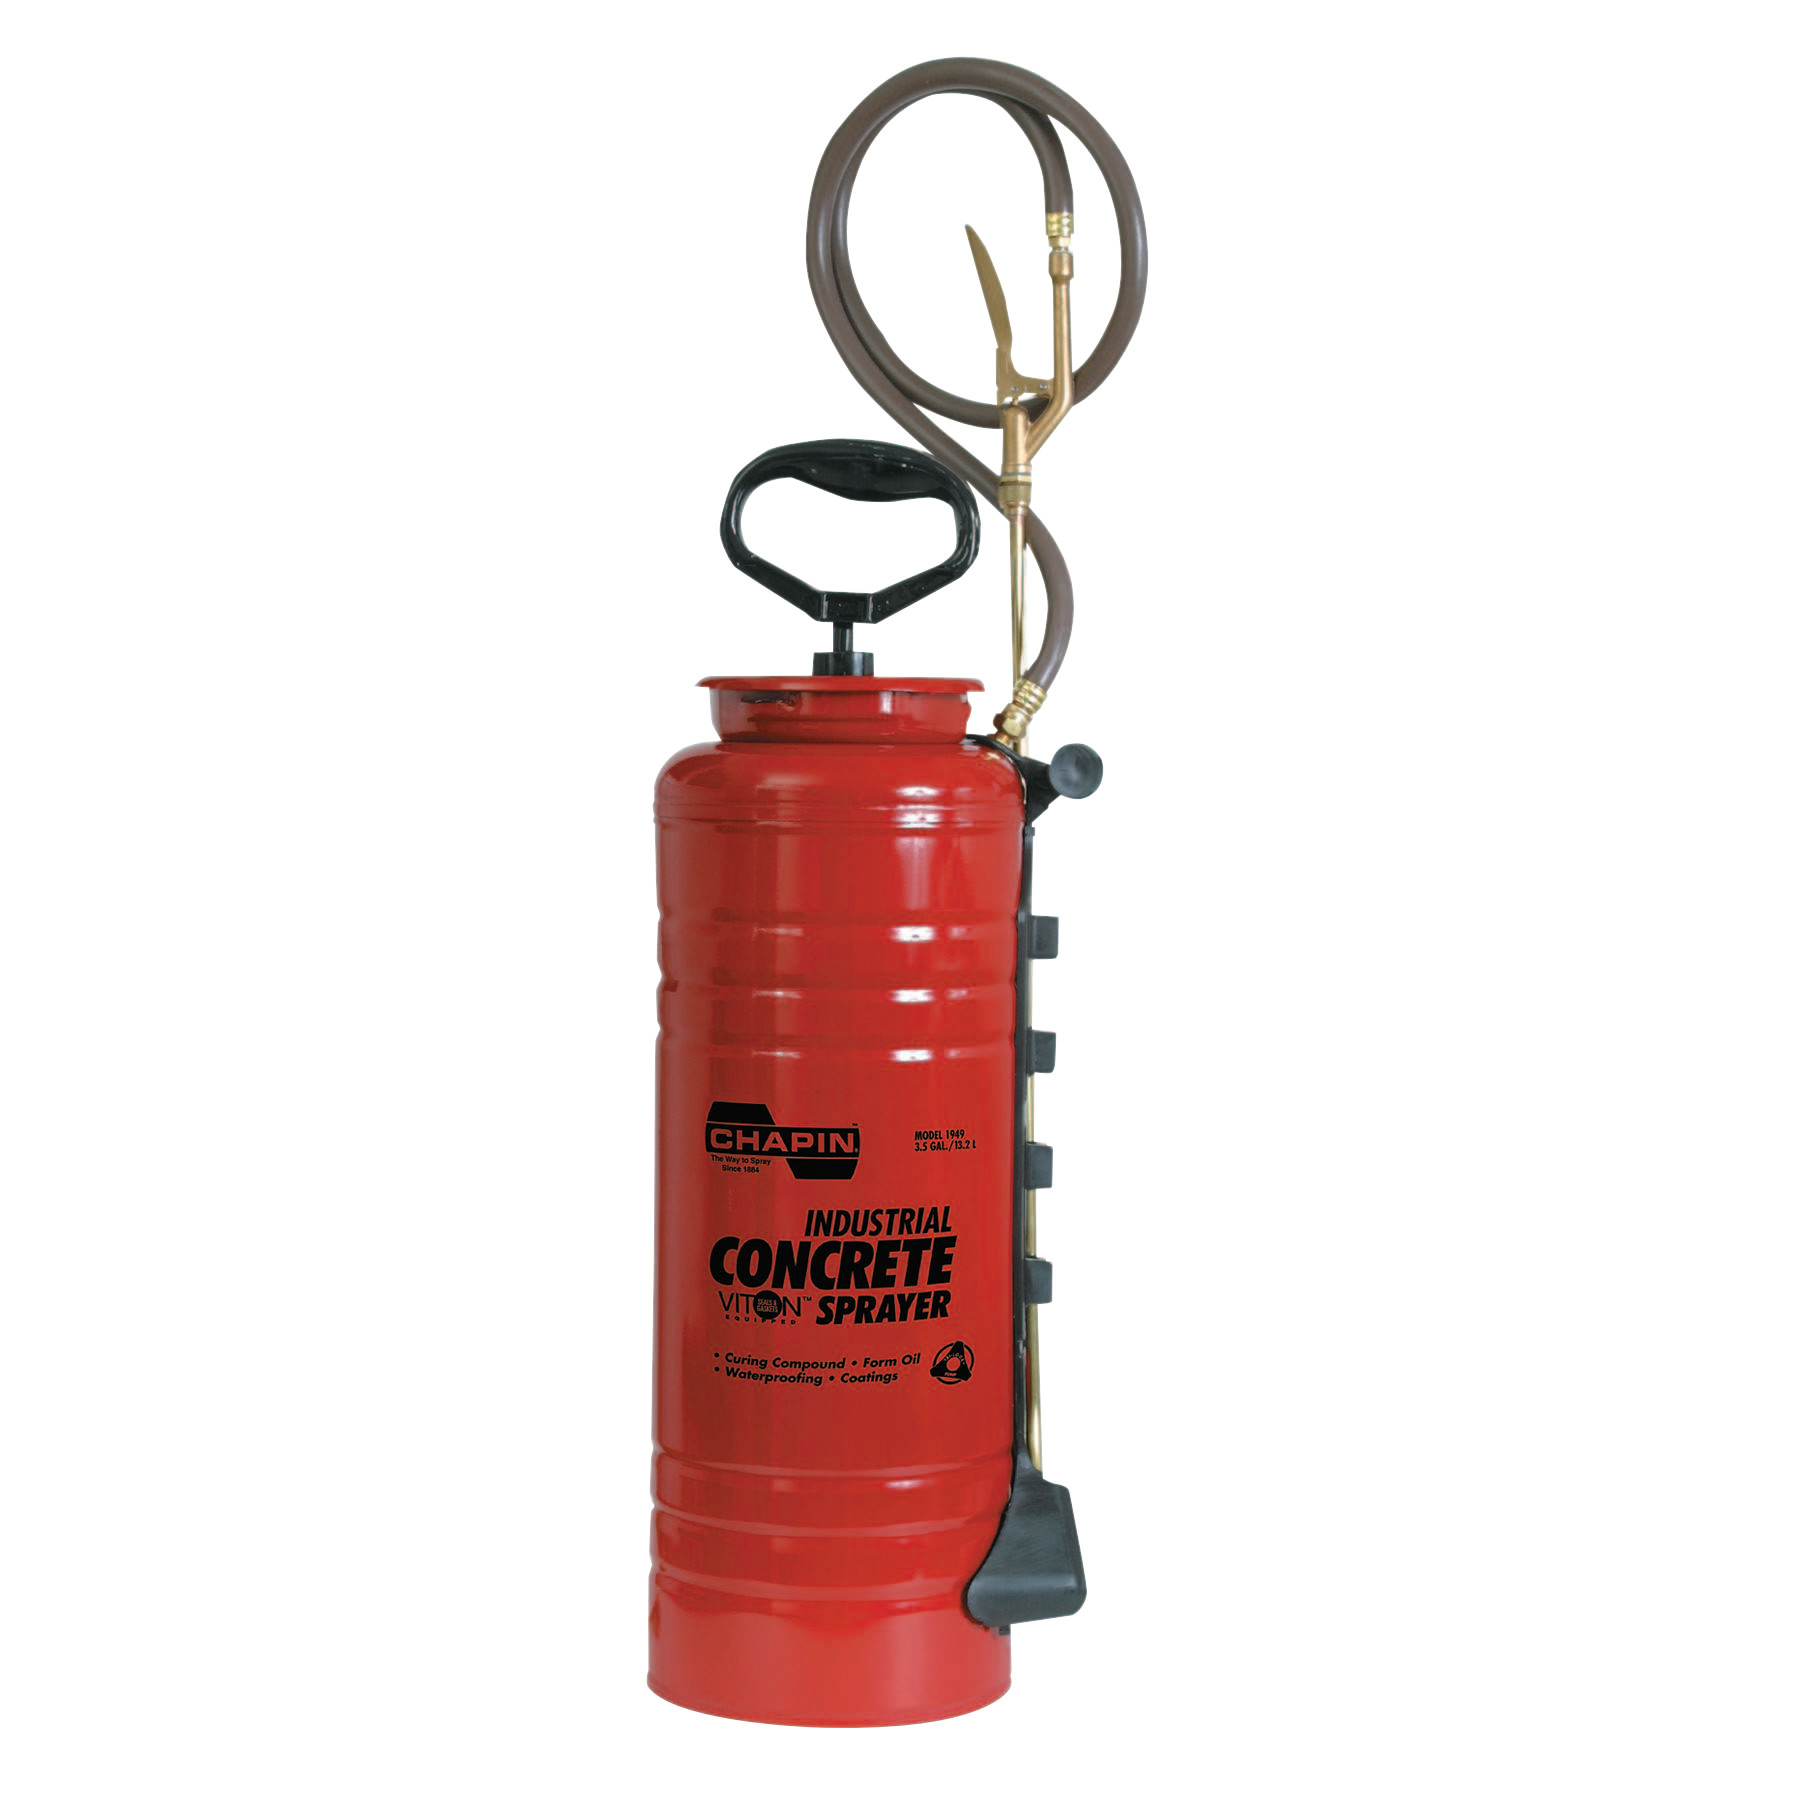 Chapin Non-Acetone Concrete Sprayer, 3 1 2 gal, 24 in Extension, 36 in Hose by Chapin™